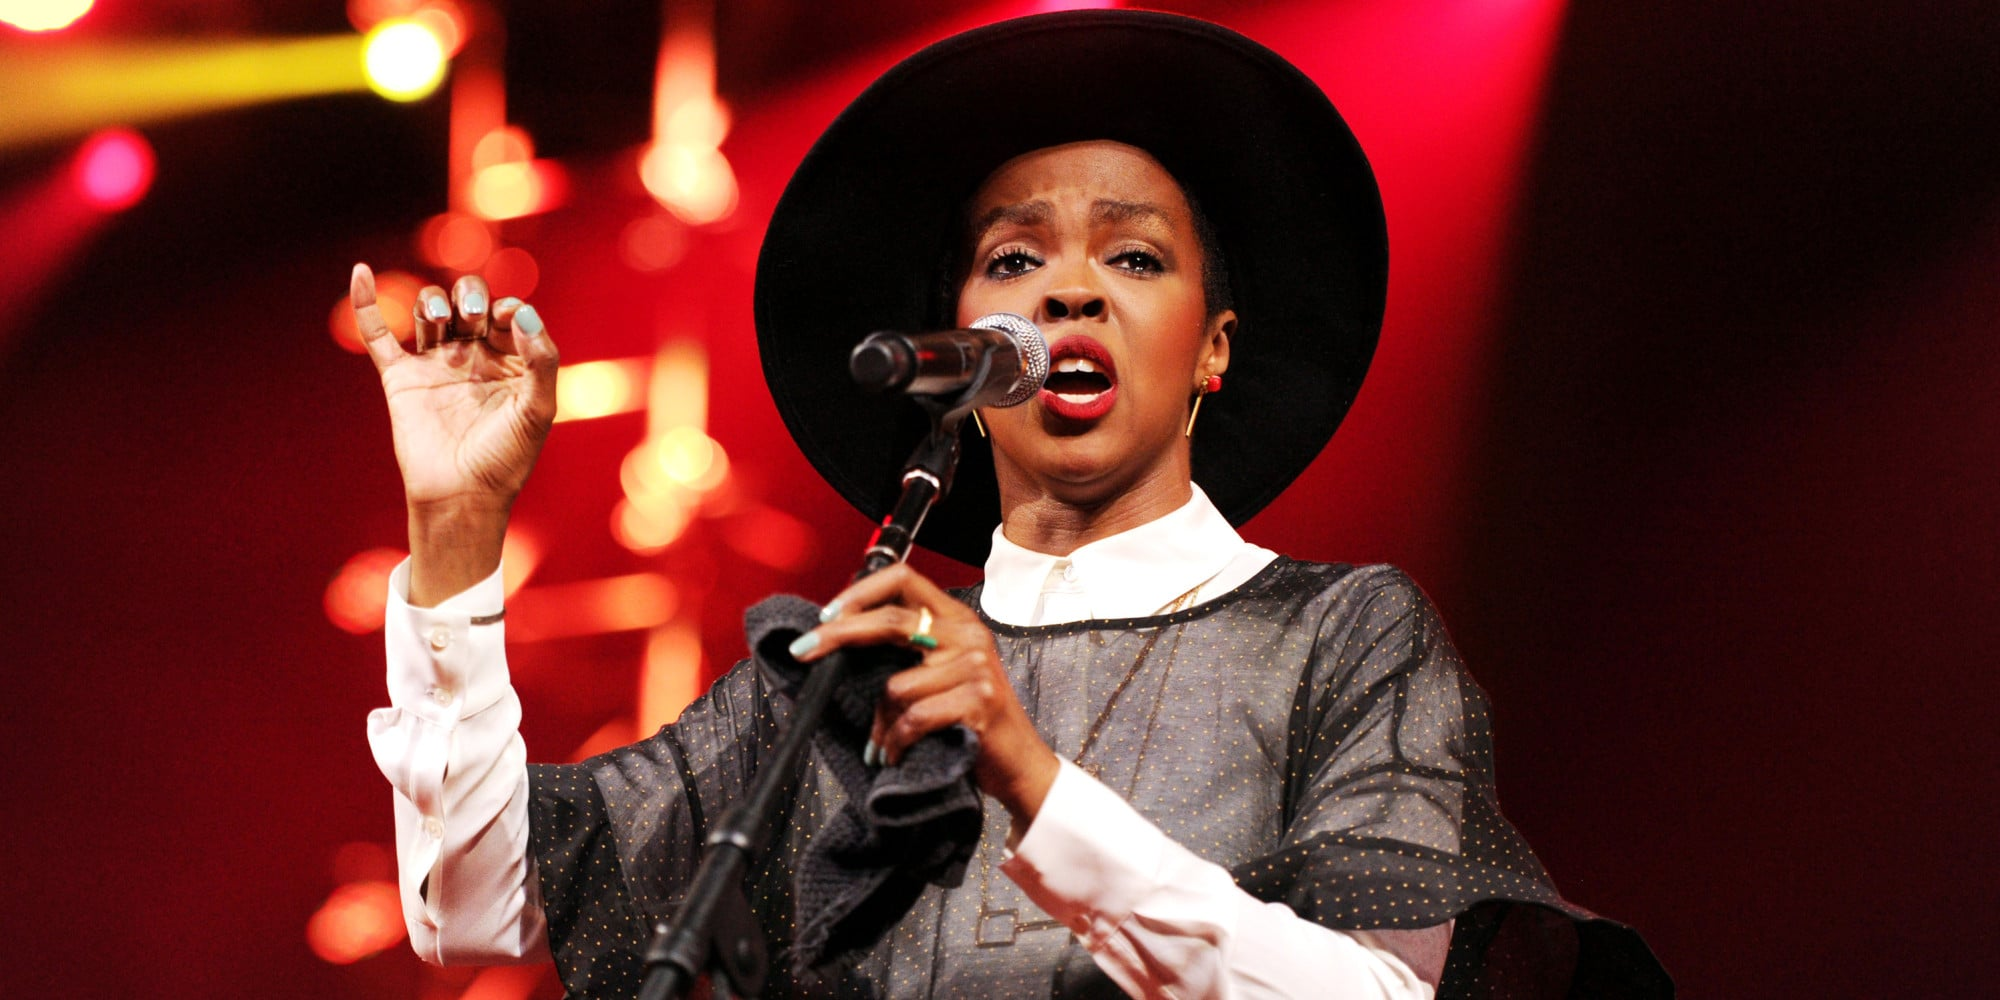 Lauryn-Hill-Net-Worth.jpg